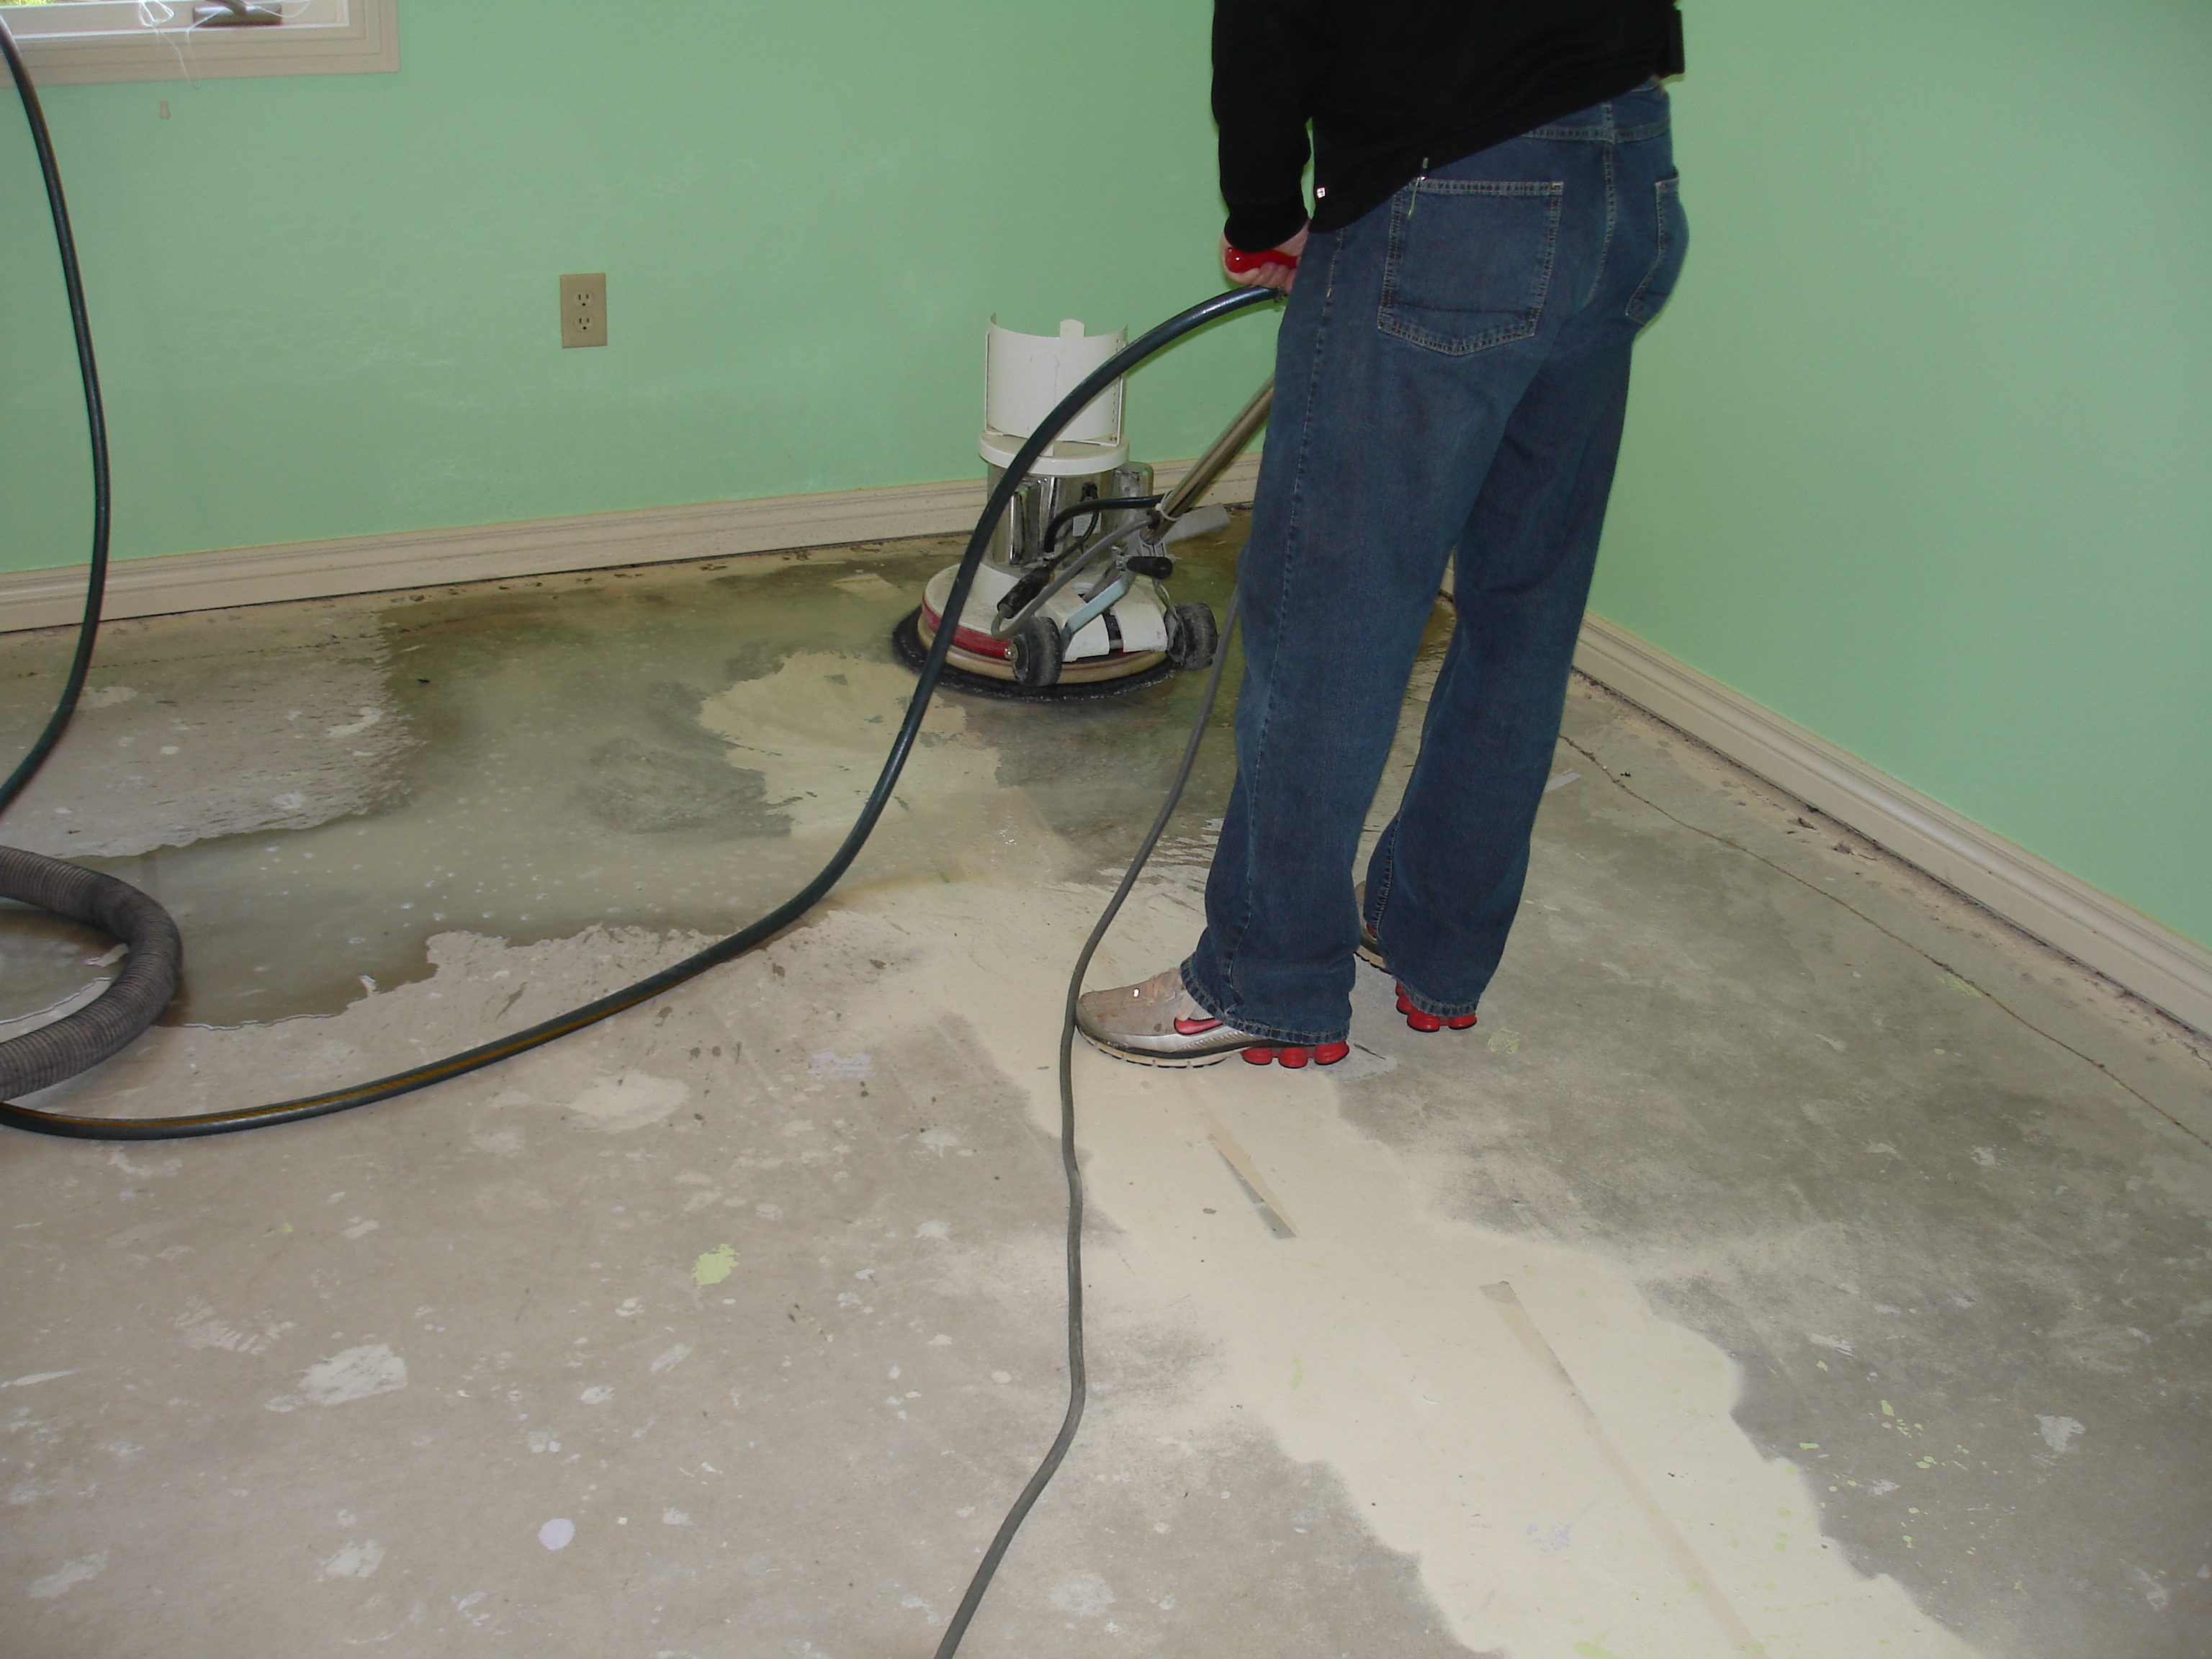 How To Install Carpet Pad On Cement Floor K Wiki Wallpapers - Carpet for basement floor cement